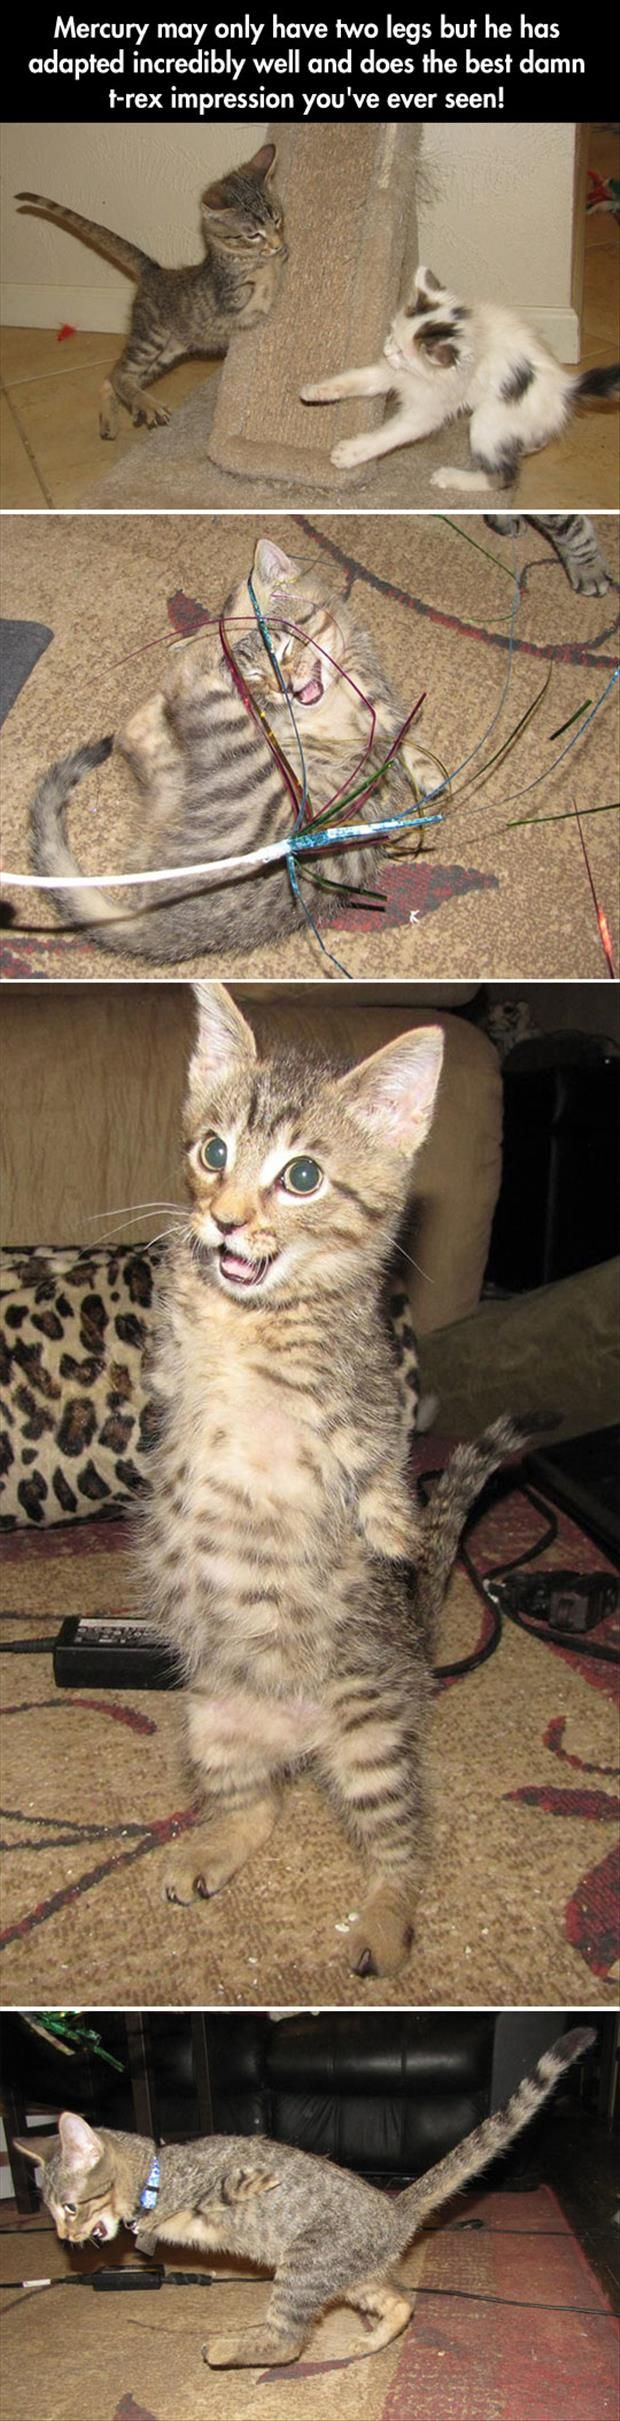 Mercury, the kitty born without 2 front legs